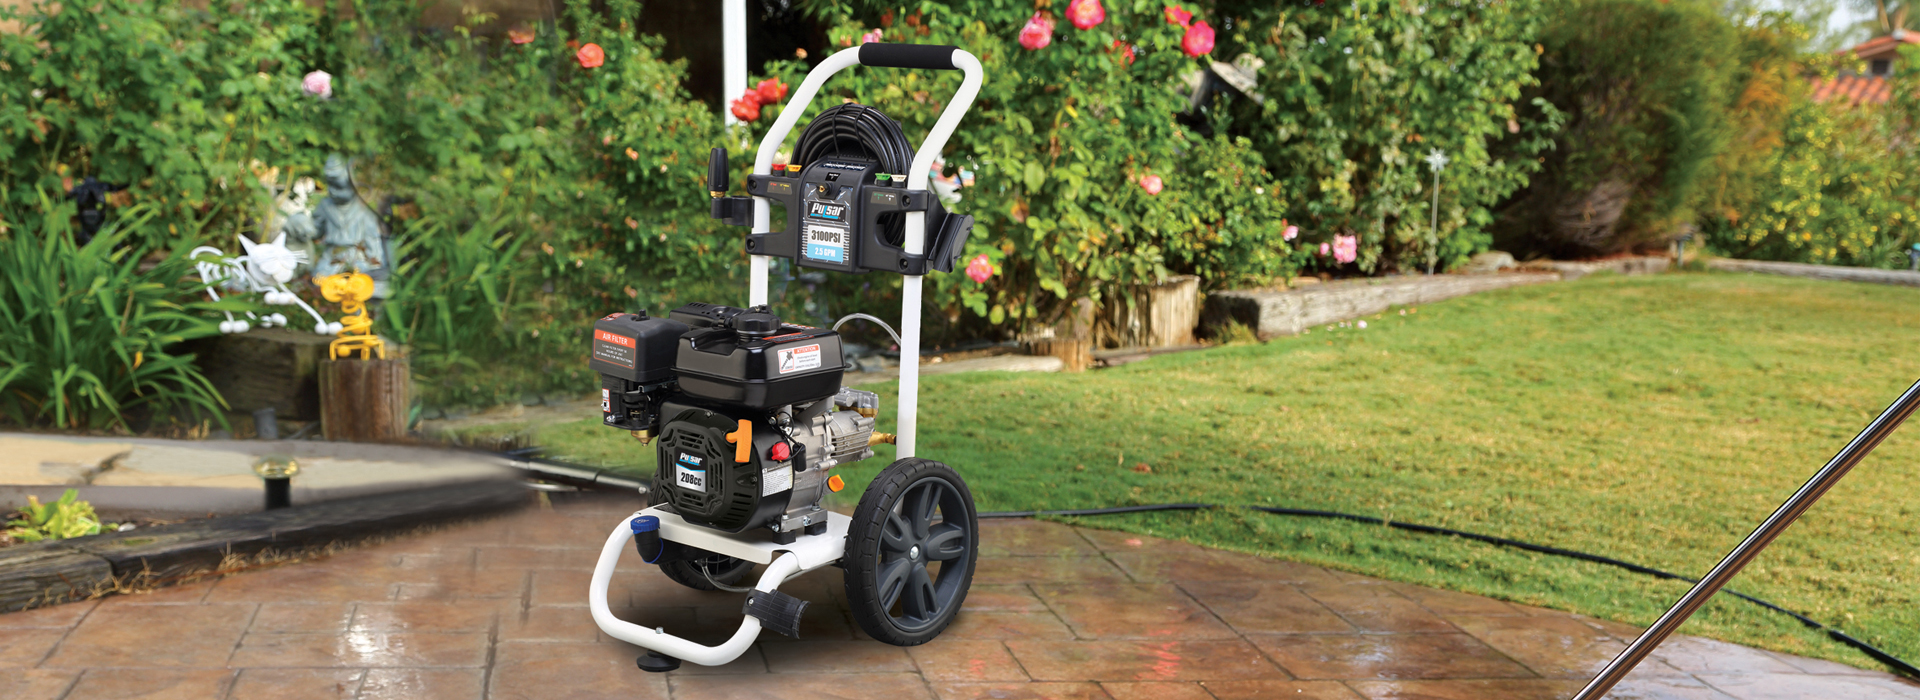 PGPW2700H-A pulsar pressure washer banner